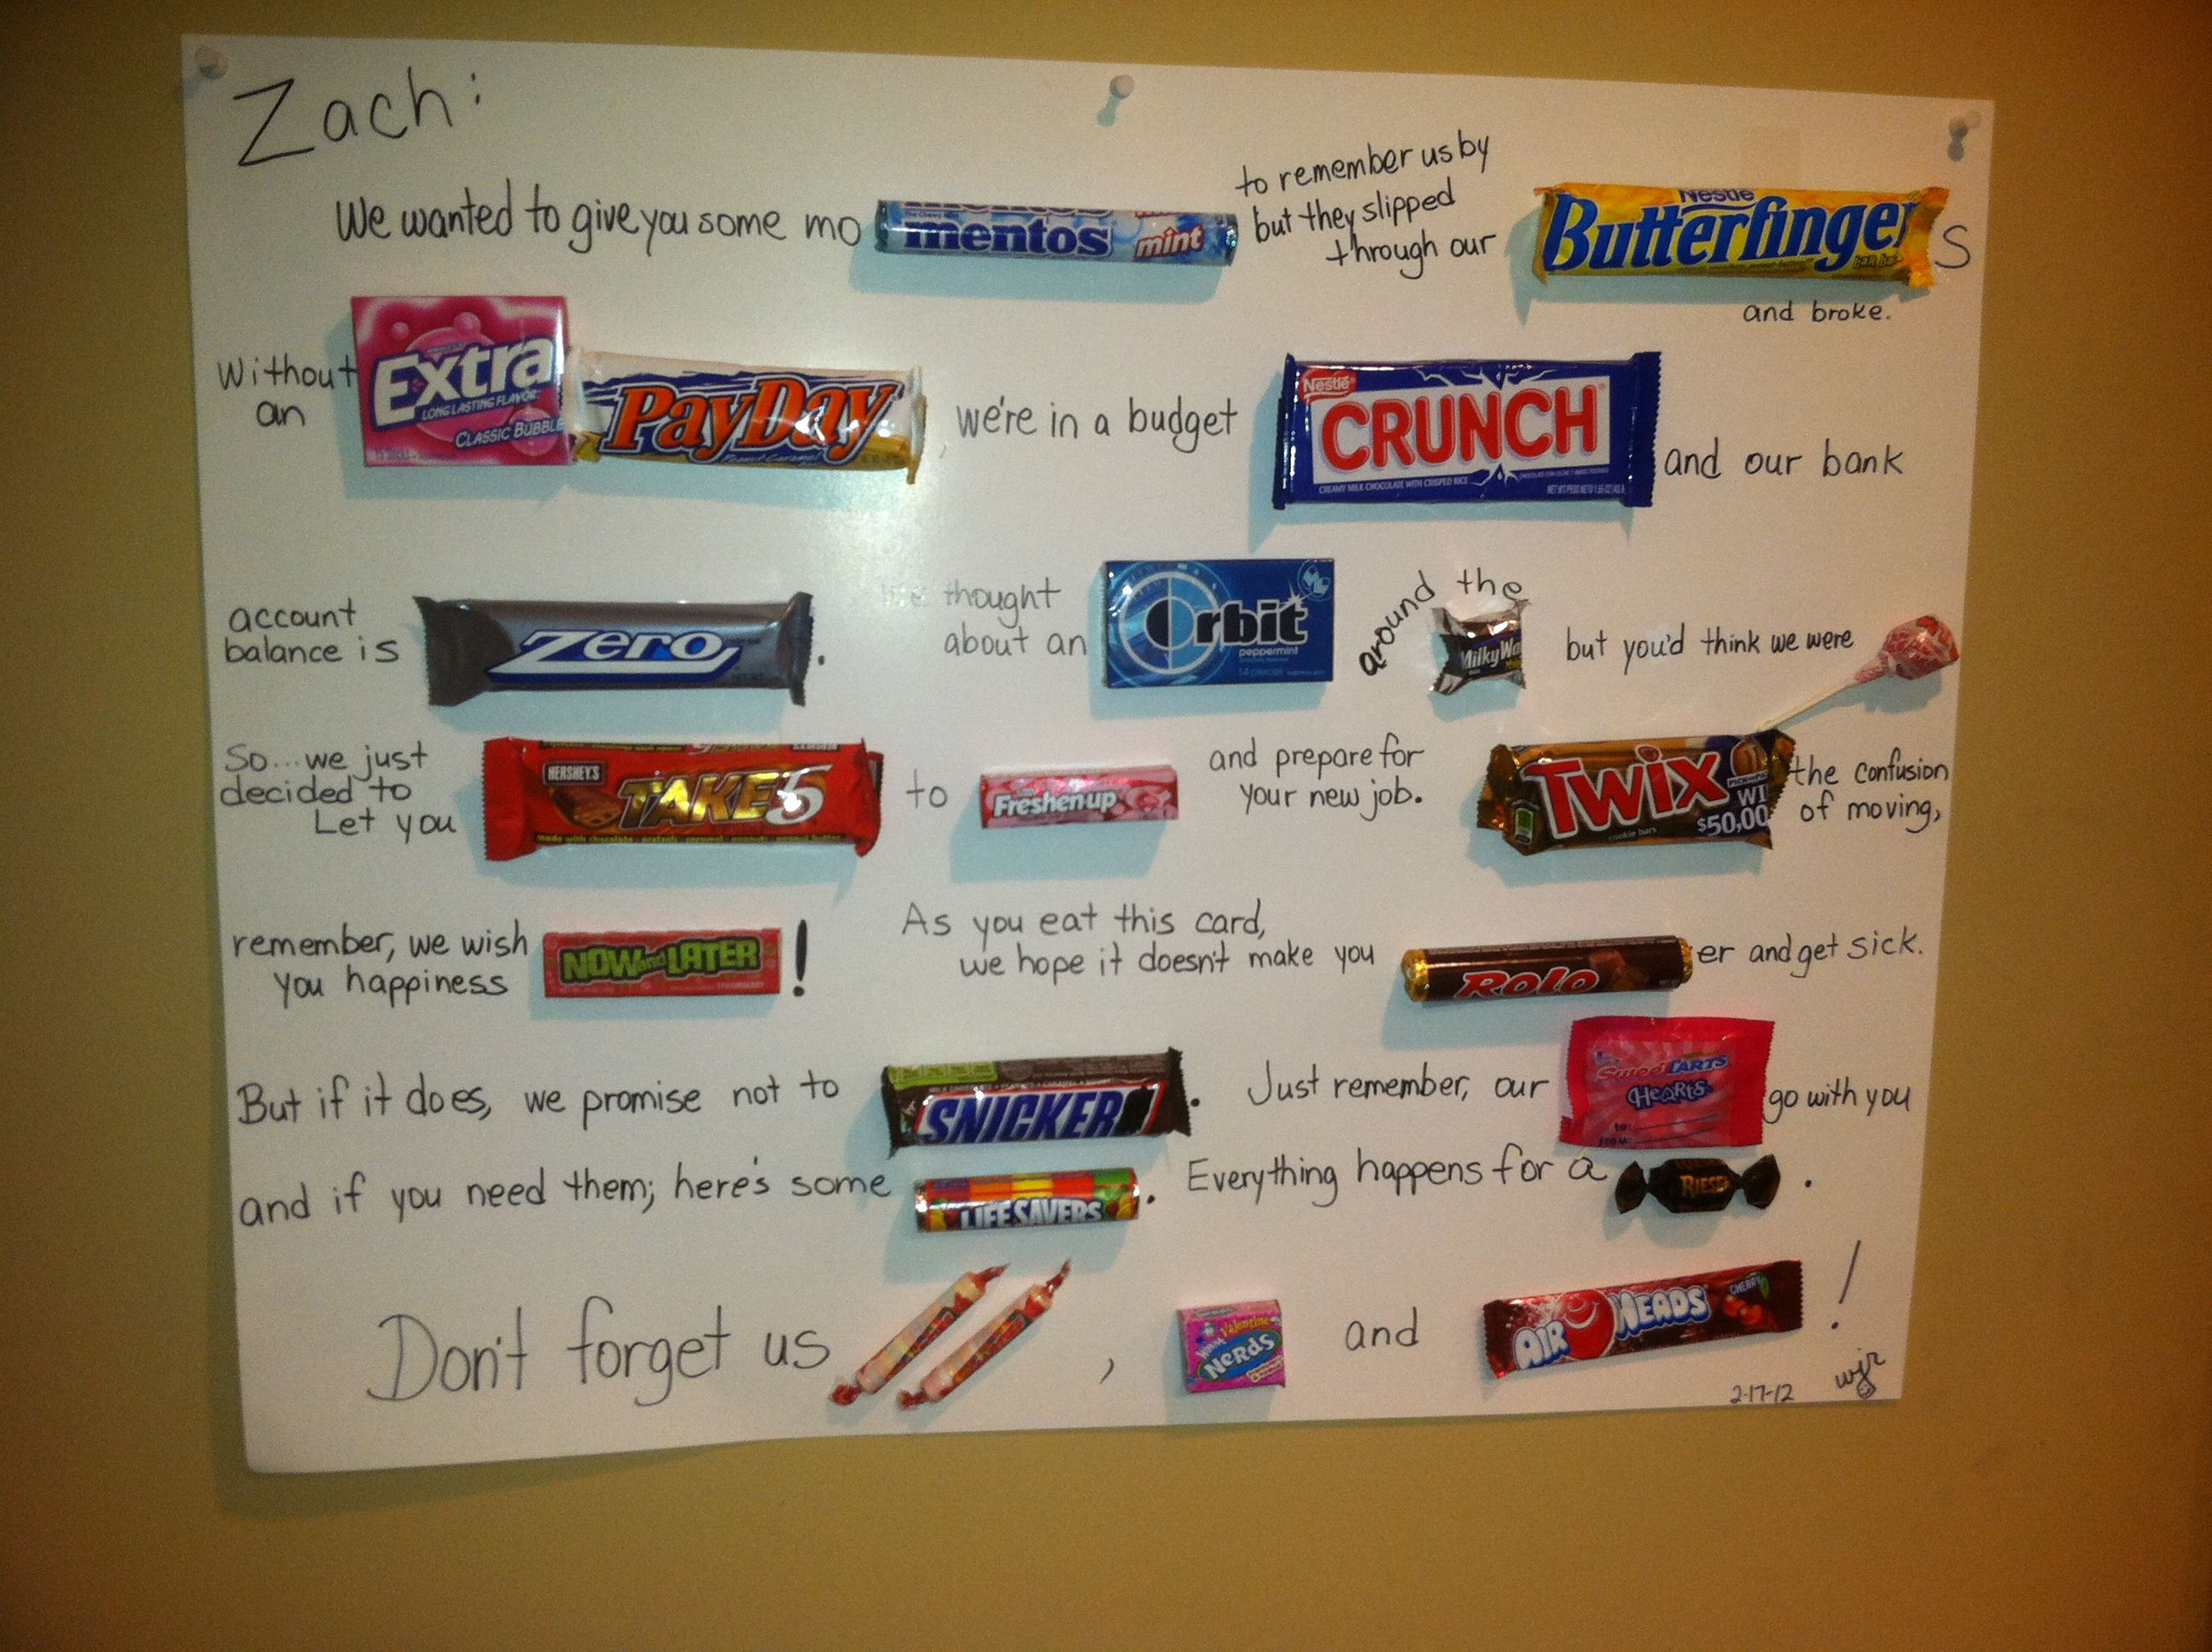 Going away card for co-worker (Zach) | Family | Pinterest ...